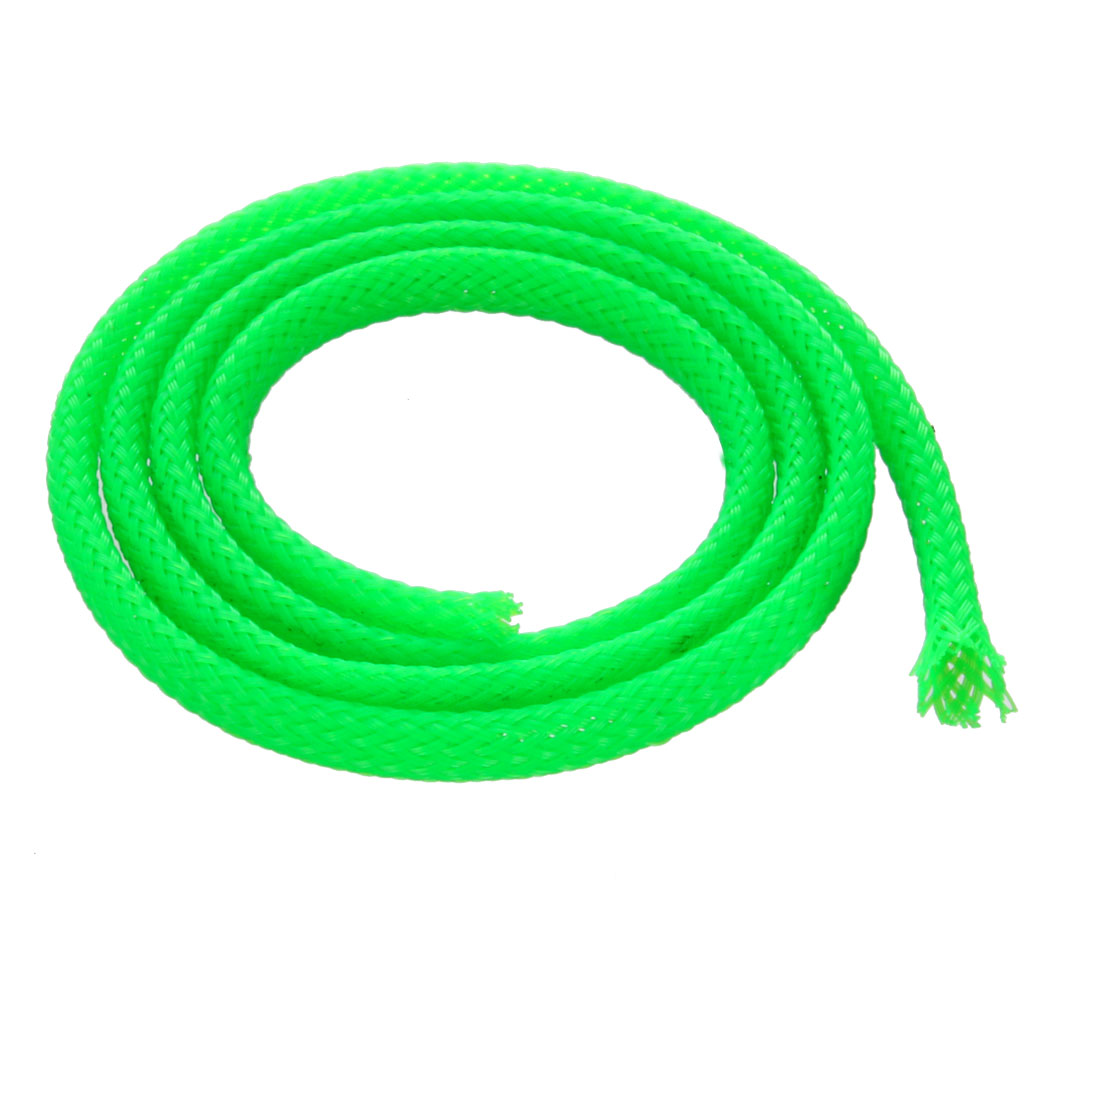 4mm Dia Tight Braided PET Expandable Sleeving Cable Wrap Sheath Fluorescent Green 50CM